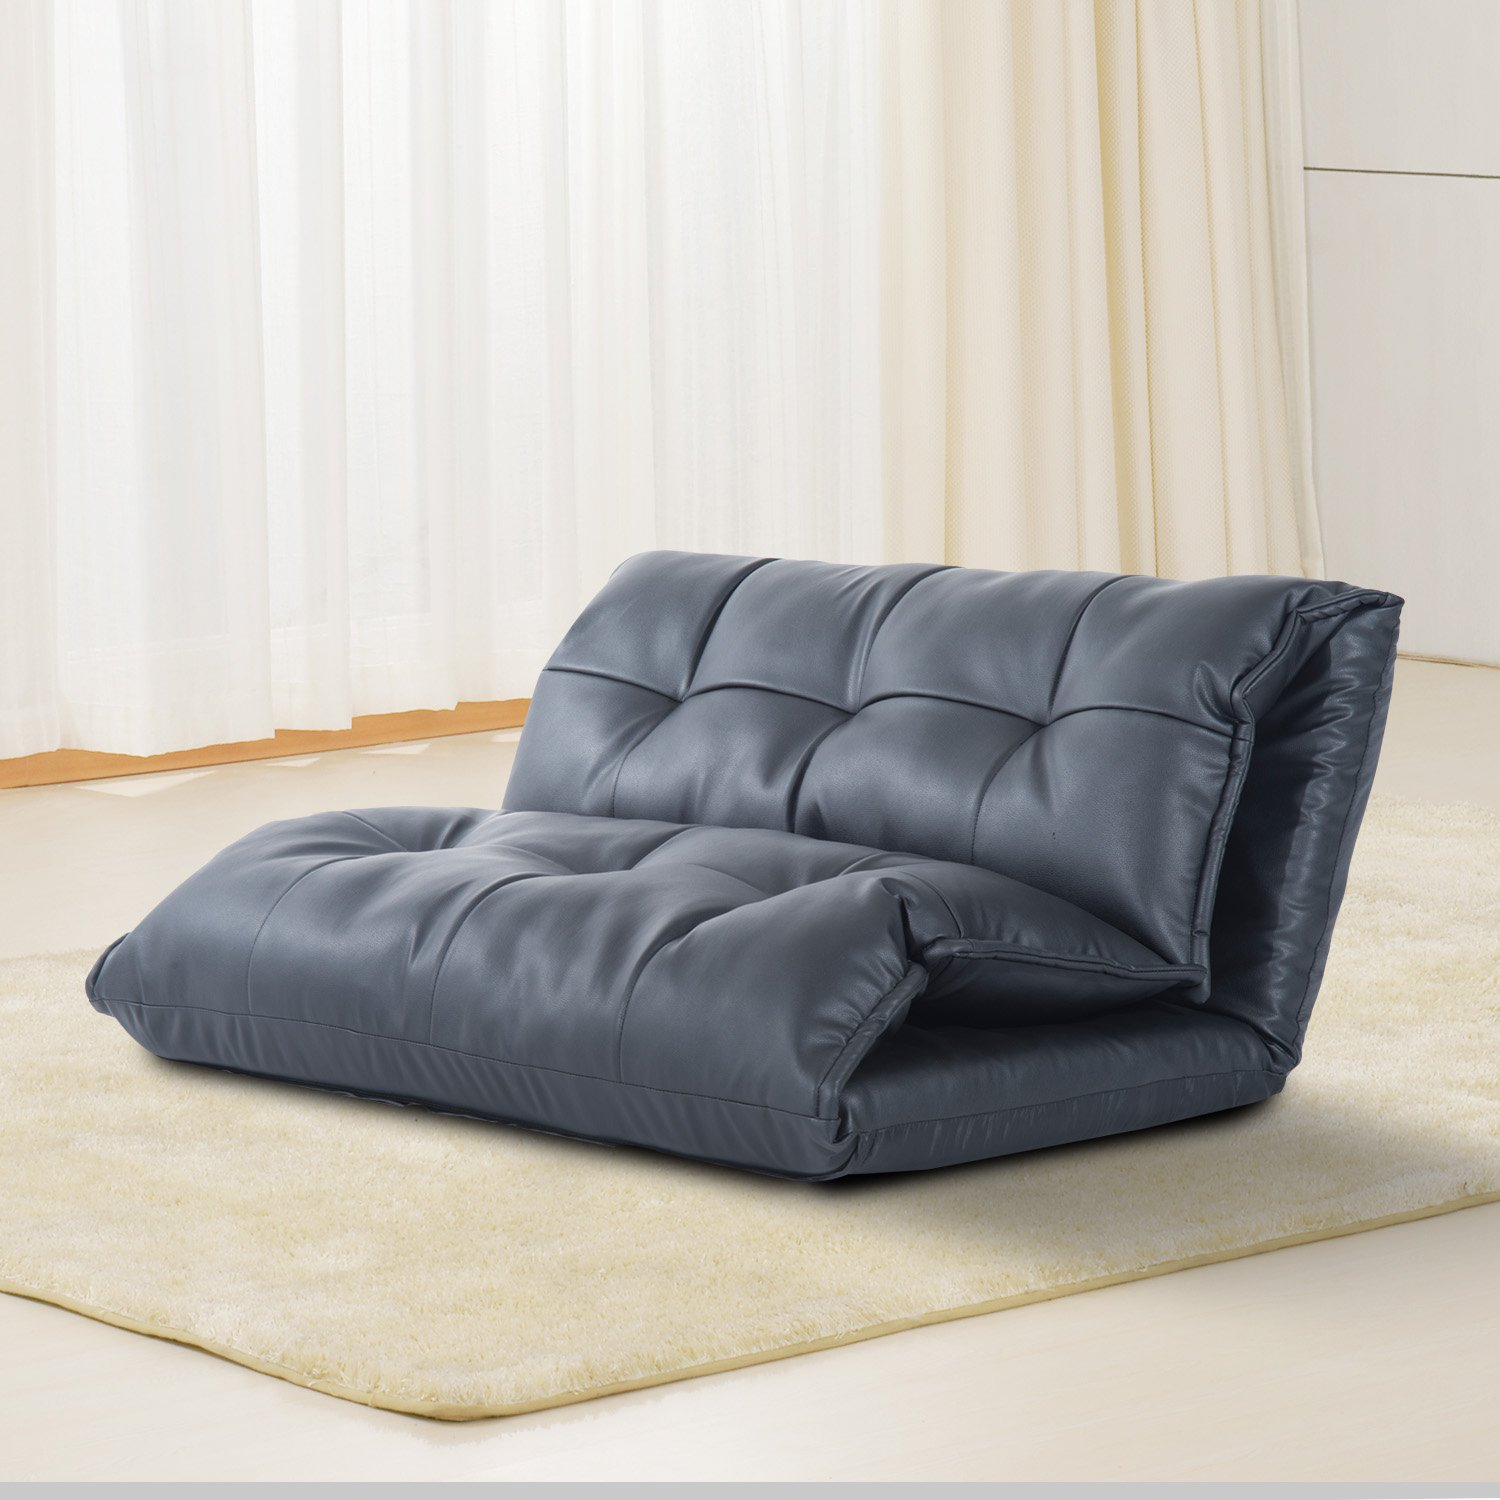 Top 10 Best Sleeper Sofa Beds 2019 2020 On Flipboard By